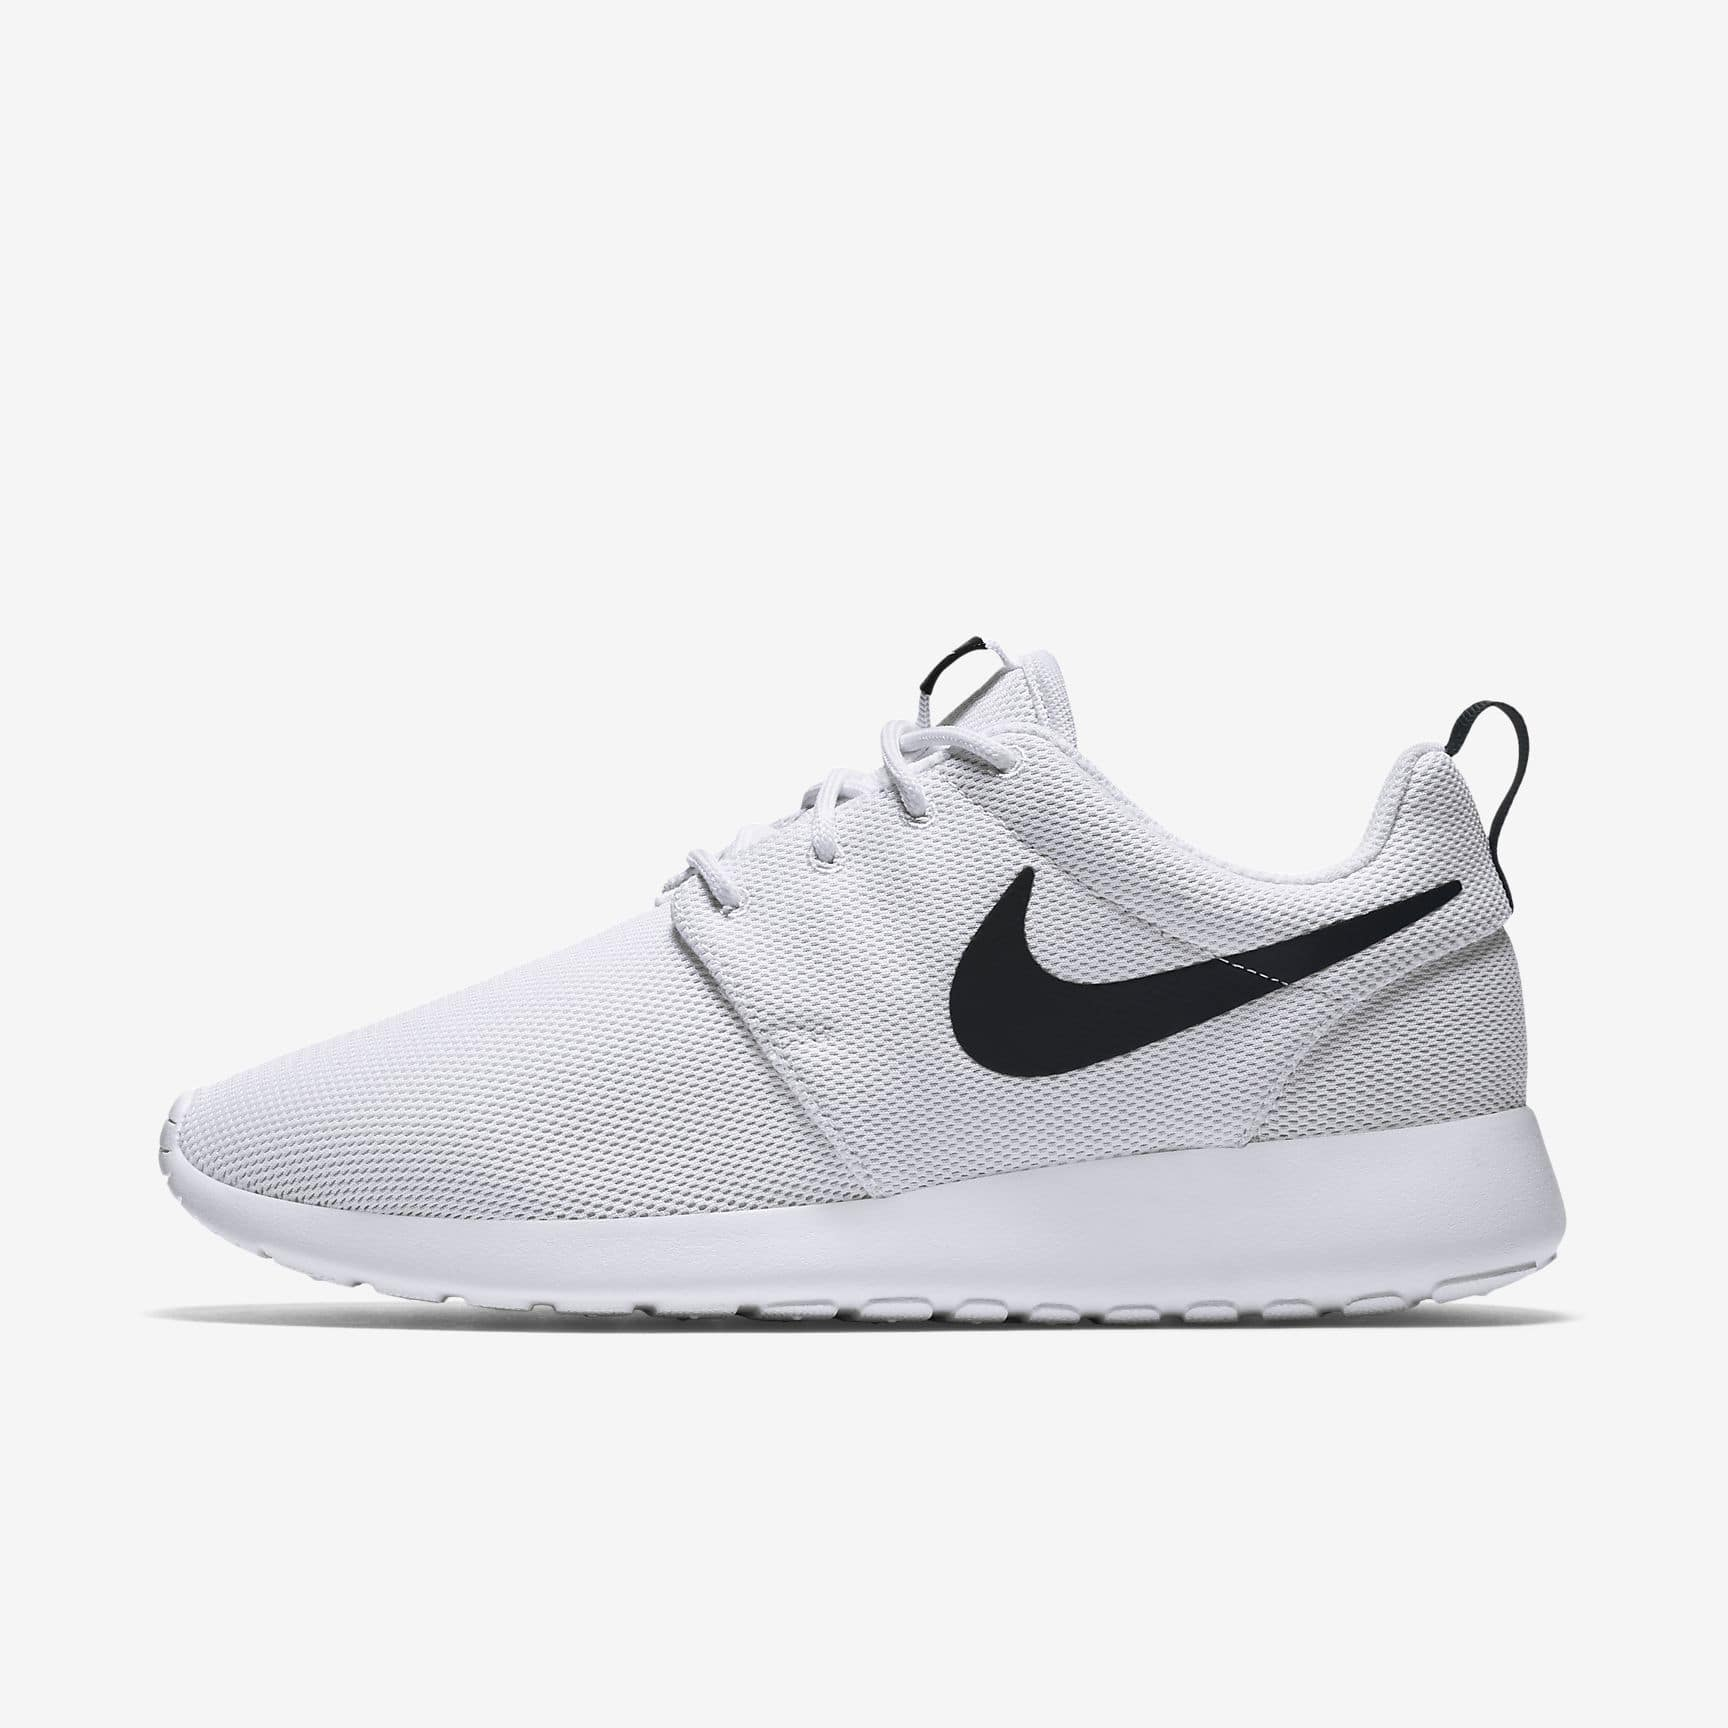 8ffd20619d0a Nike Women s Roshe One Shoes (White Black White) - Slickdeals.net